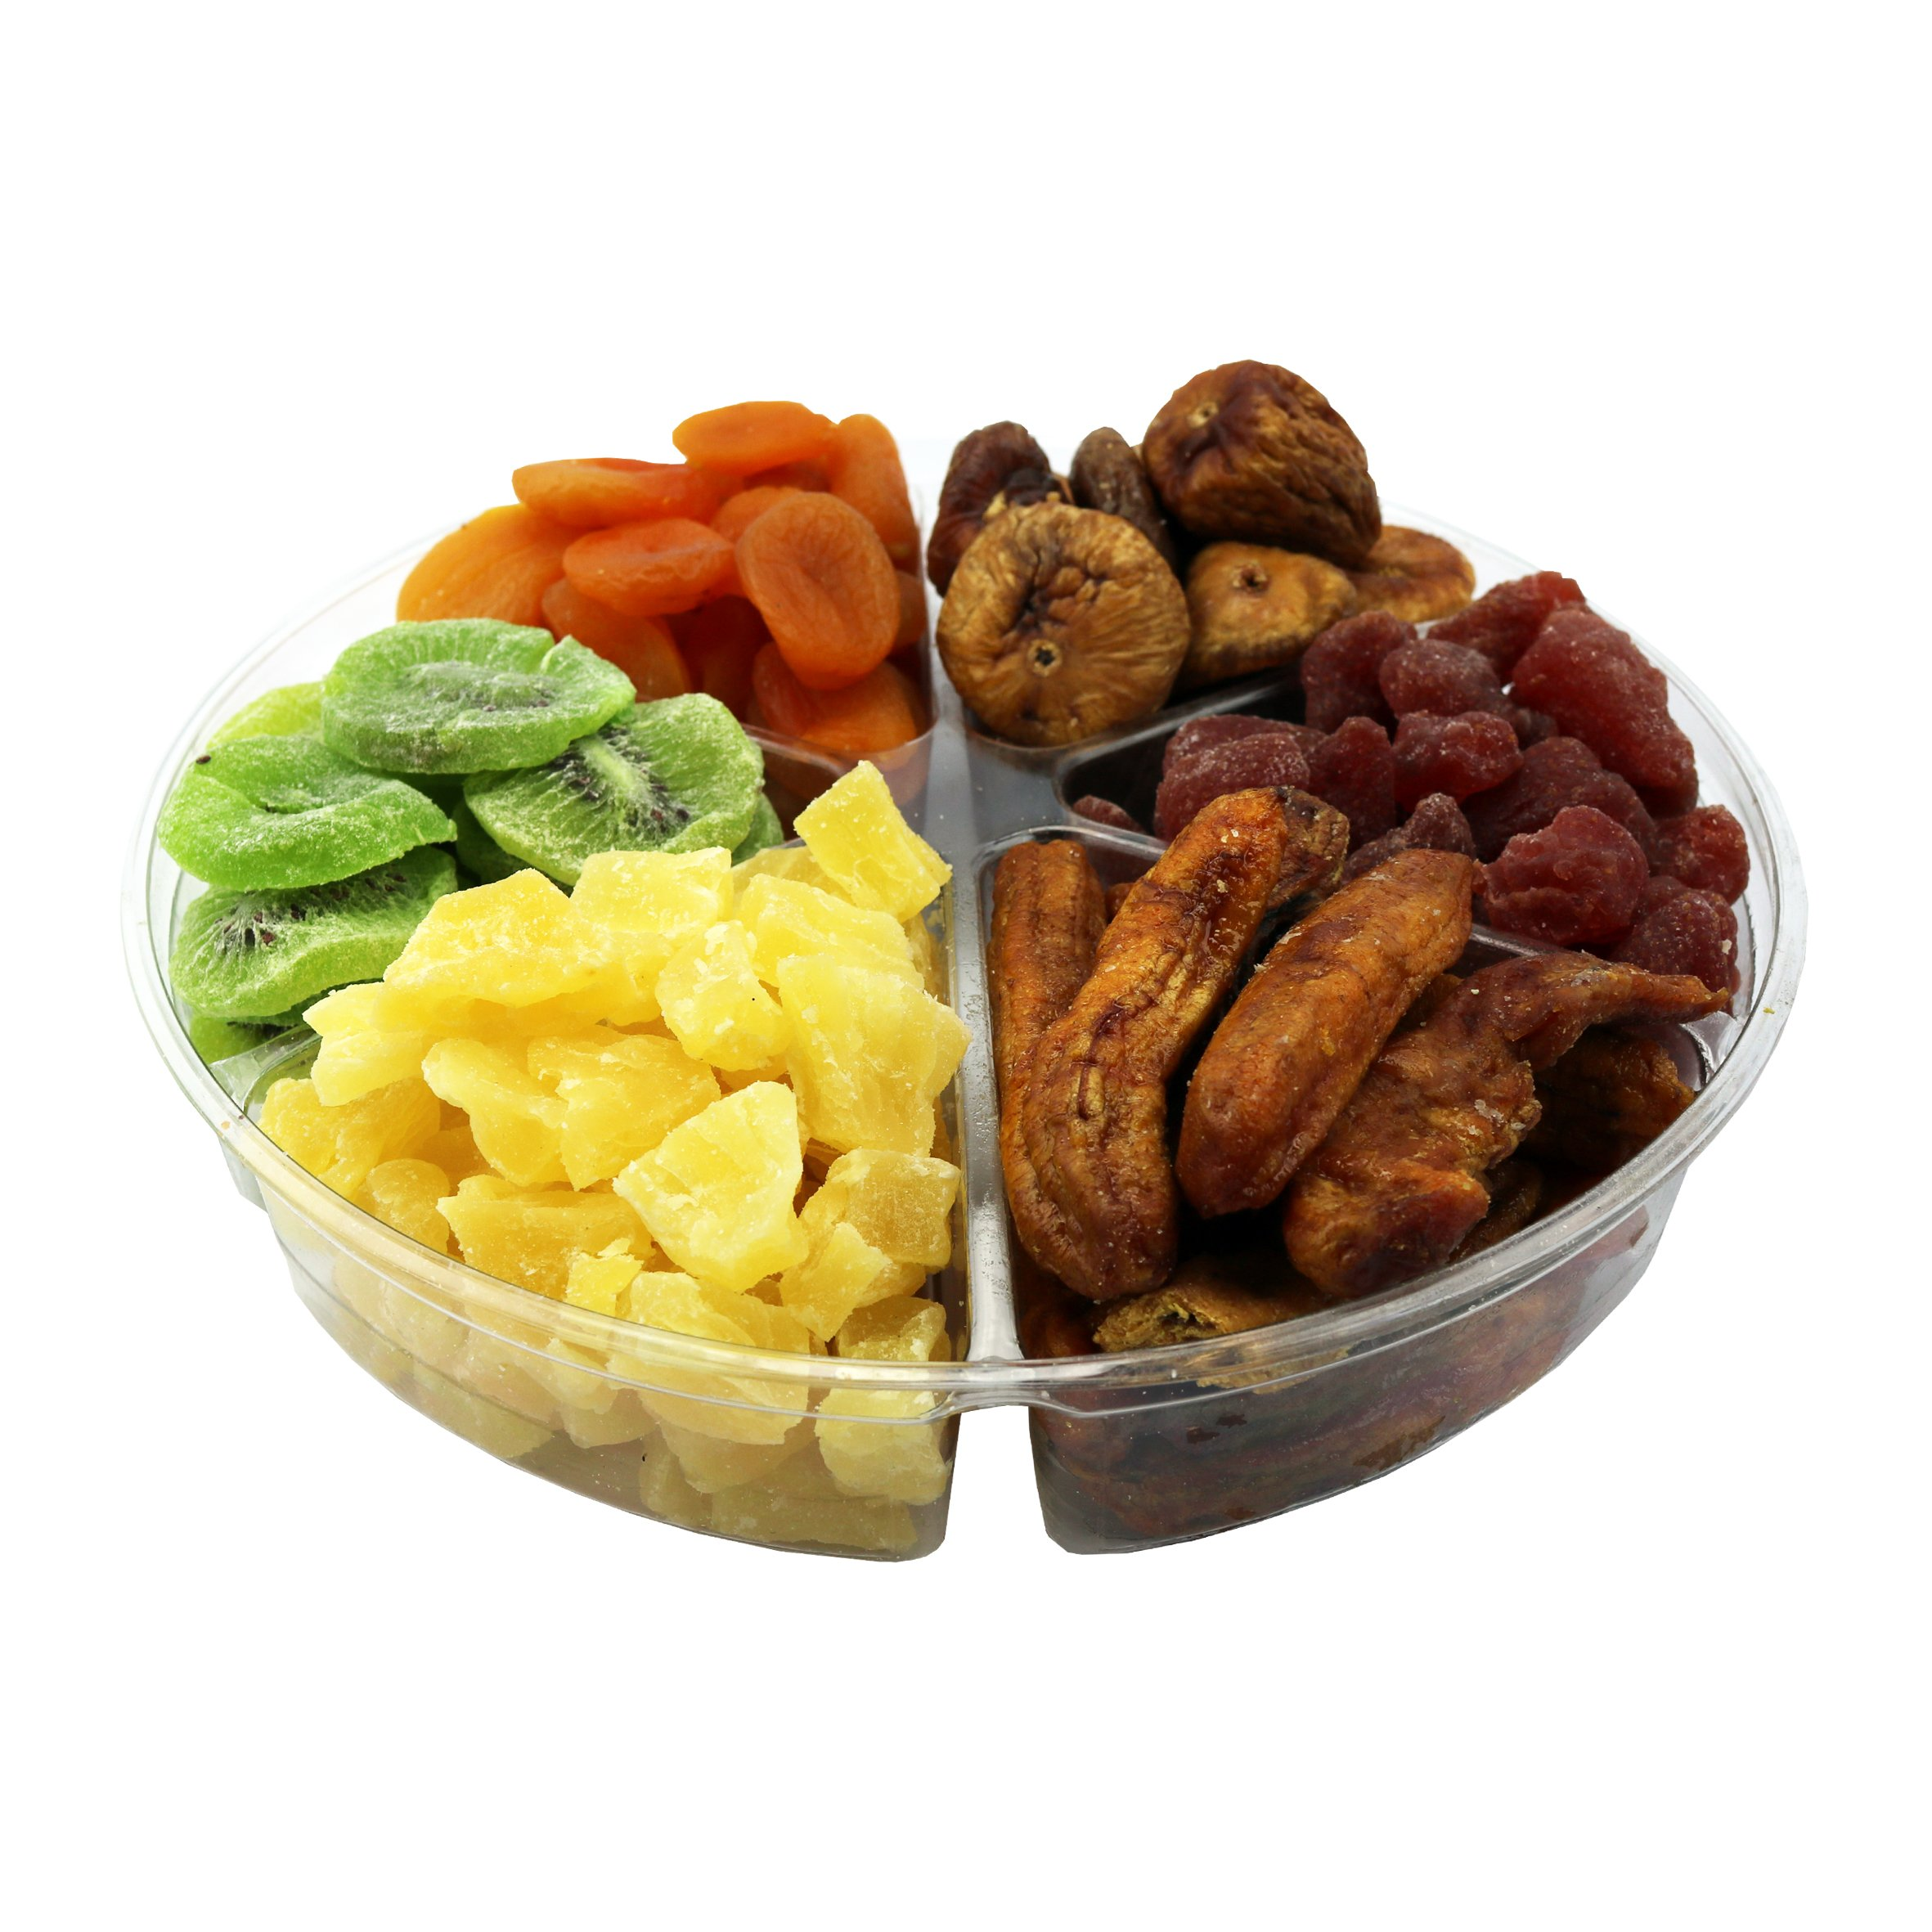 Dried Fruit Deluxe Gift Tray, 6 Section Collection of Fresh Fruits By FirstChoiceCandy by First Choice Candy (Image #3)